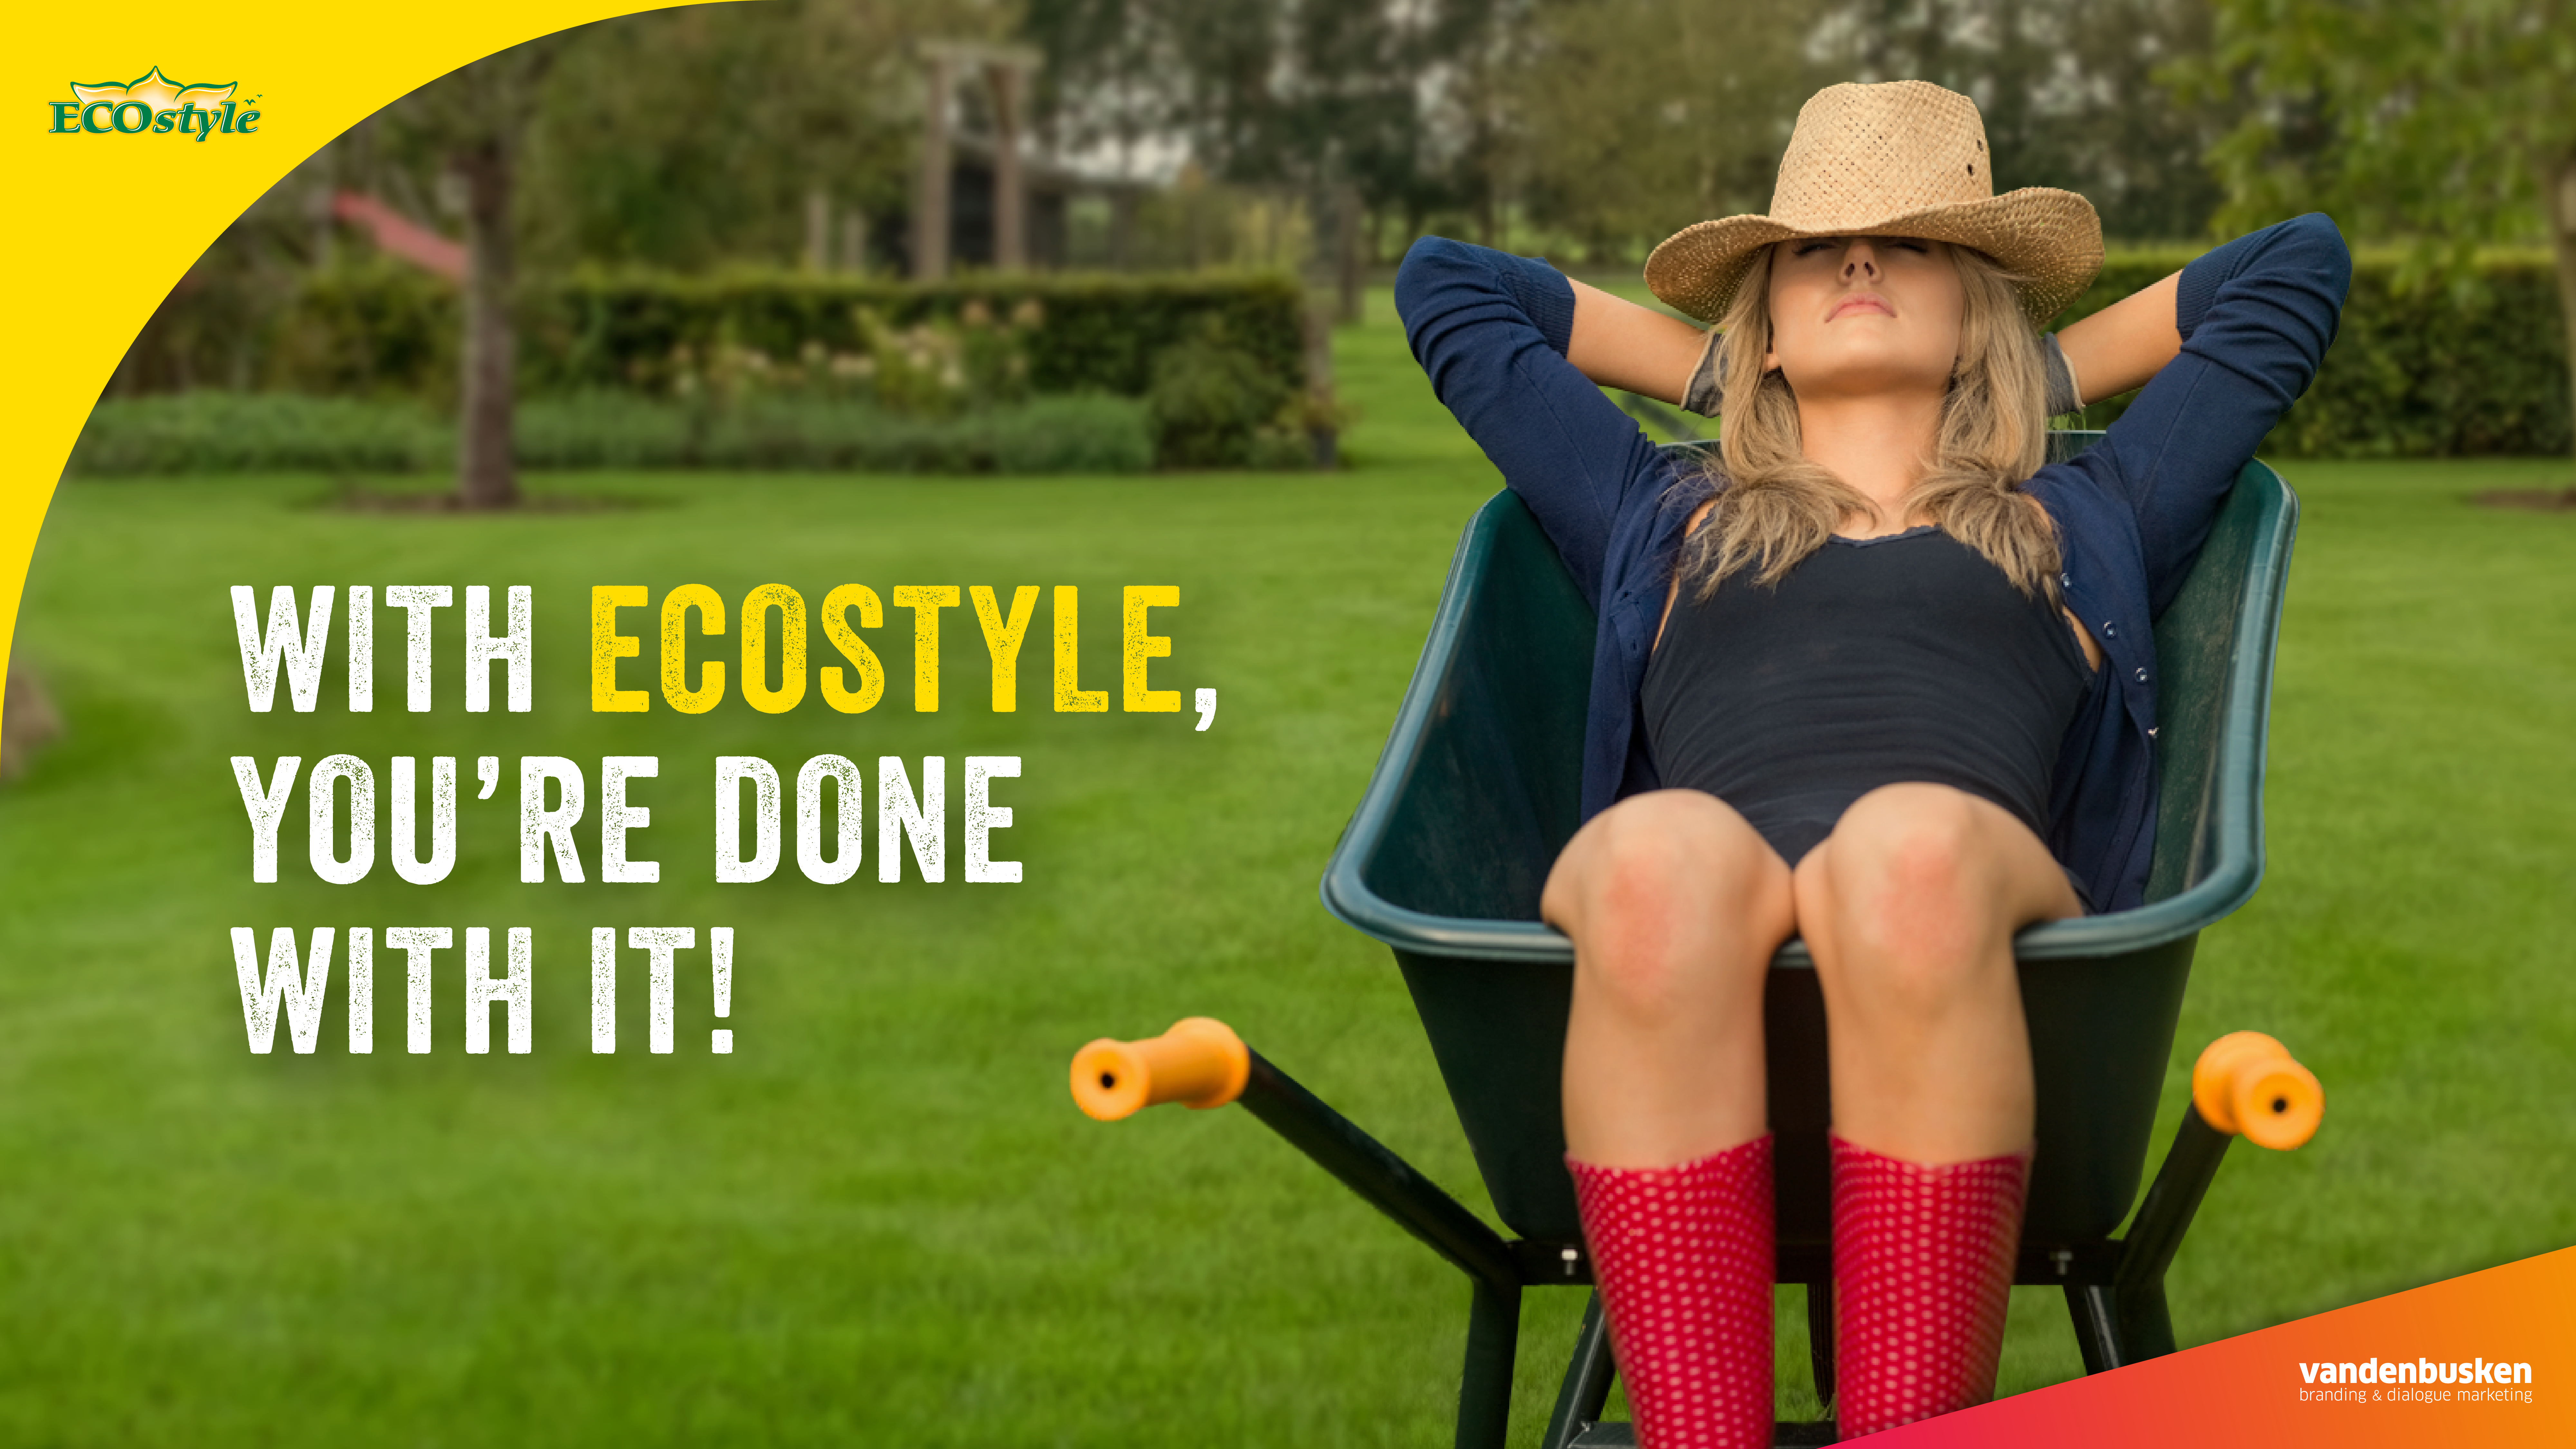 With ECOstyle, you're done with it! Spring campaign 2020